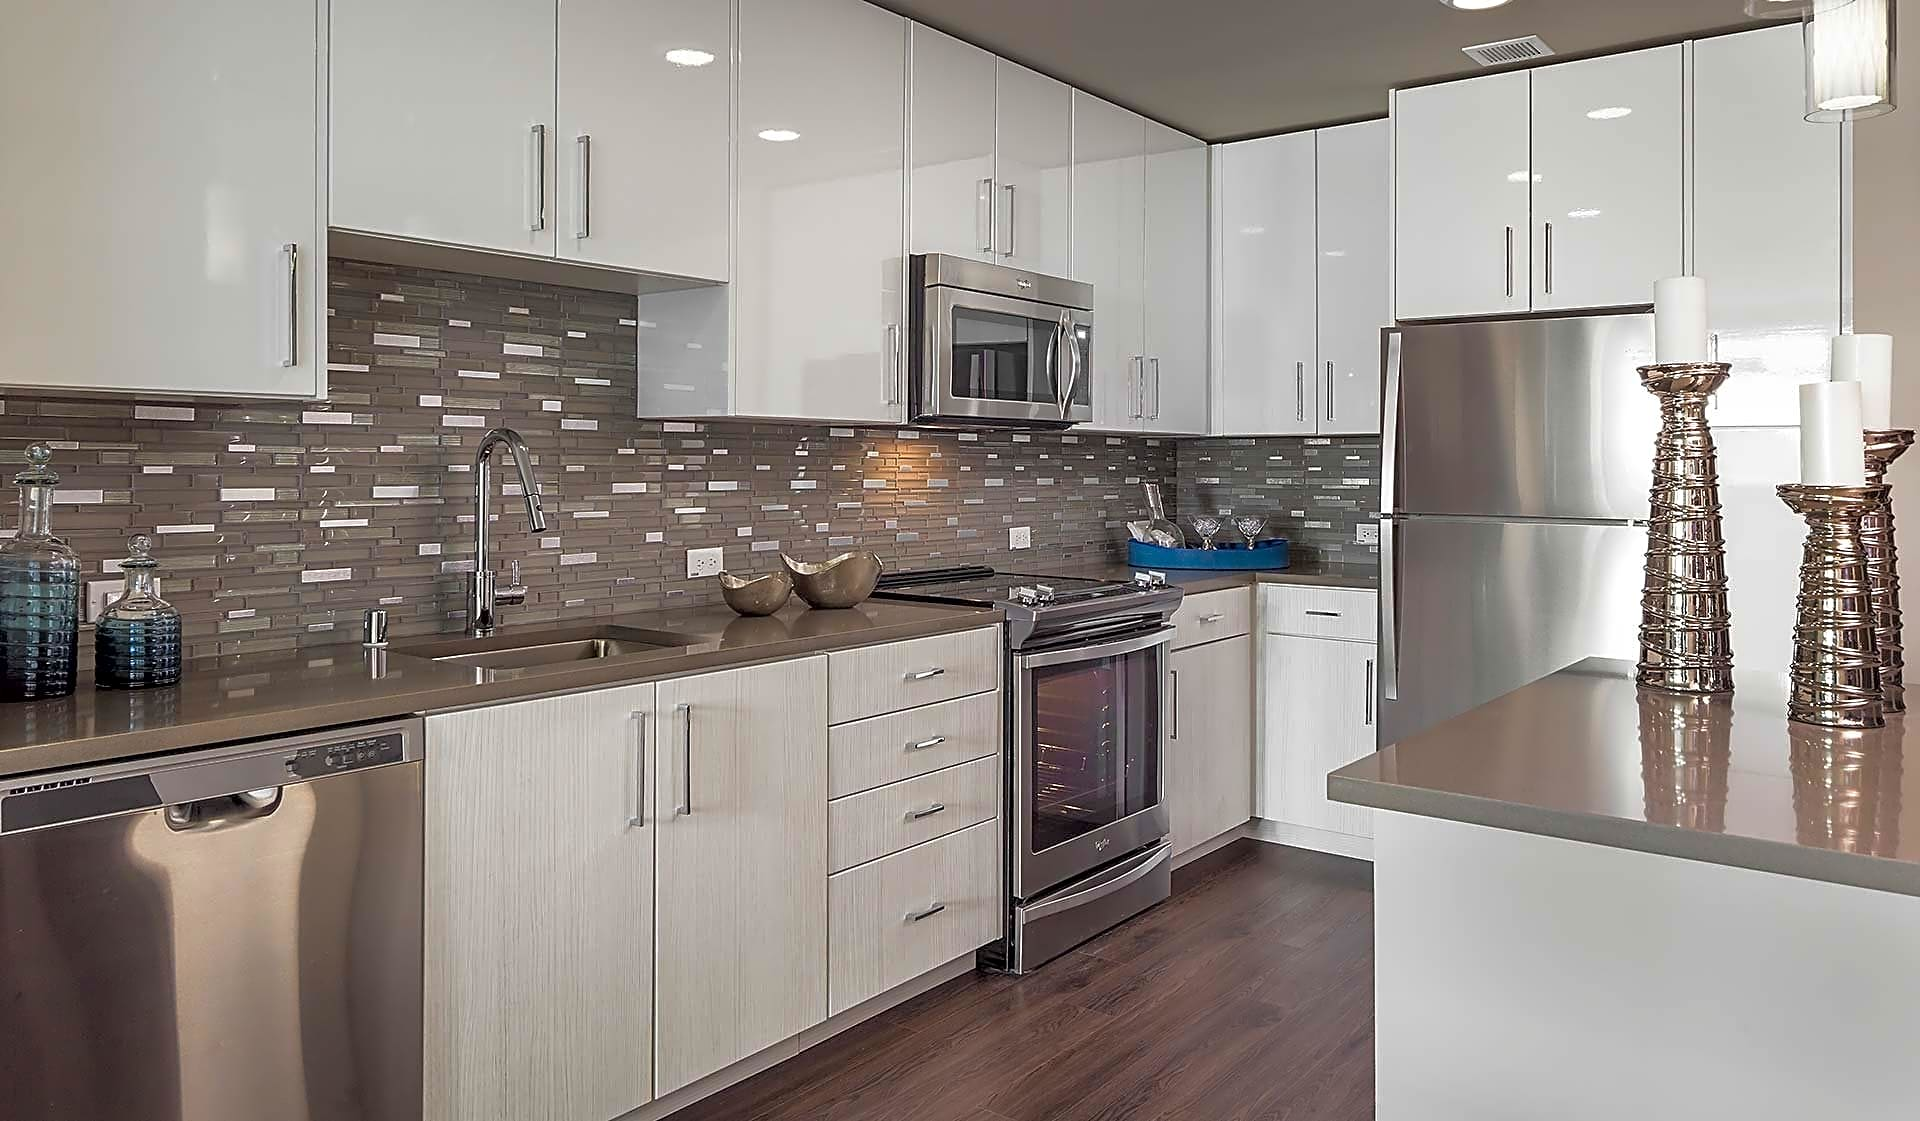 Modern kitchen featuring quartz countertops and stainless steel appliances